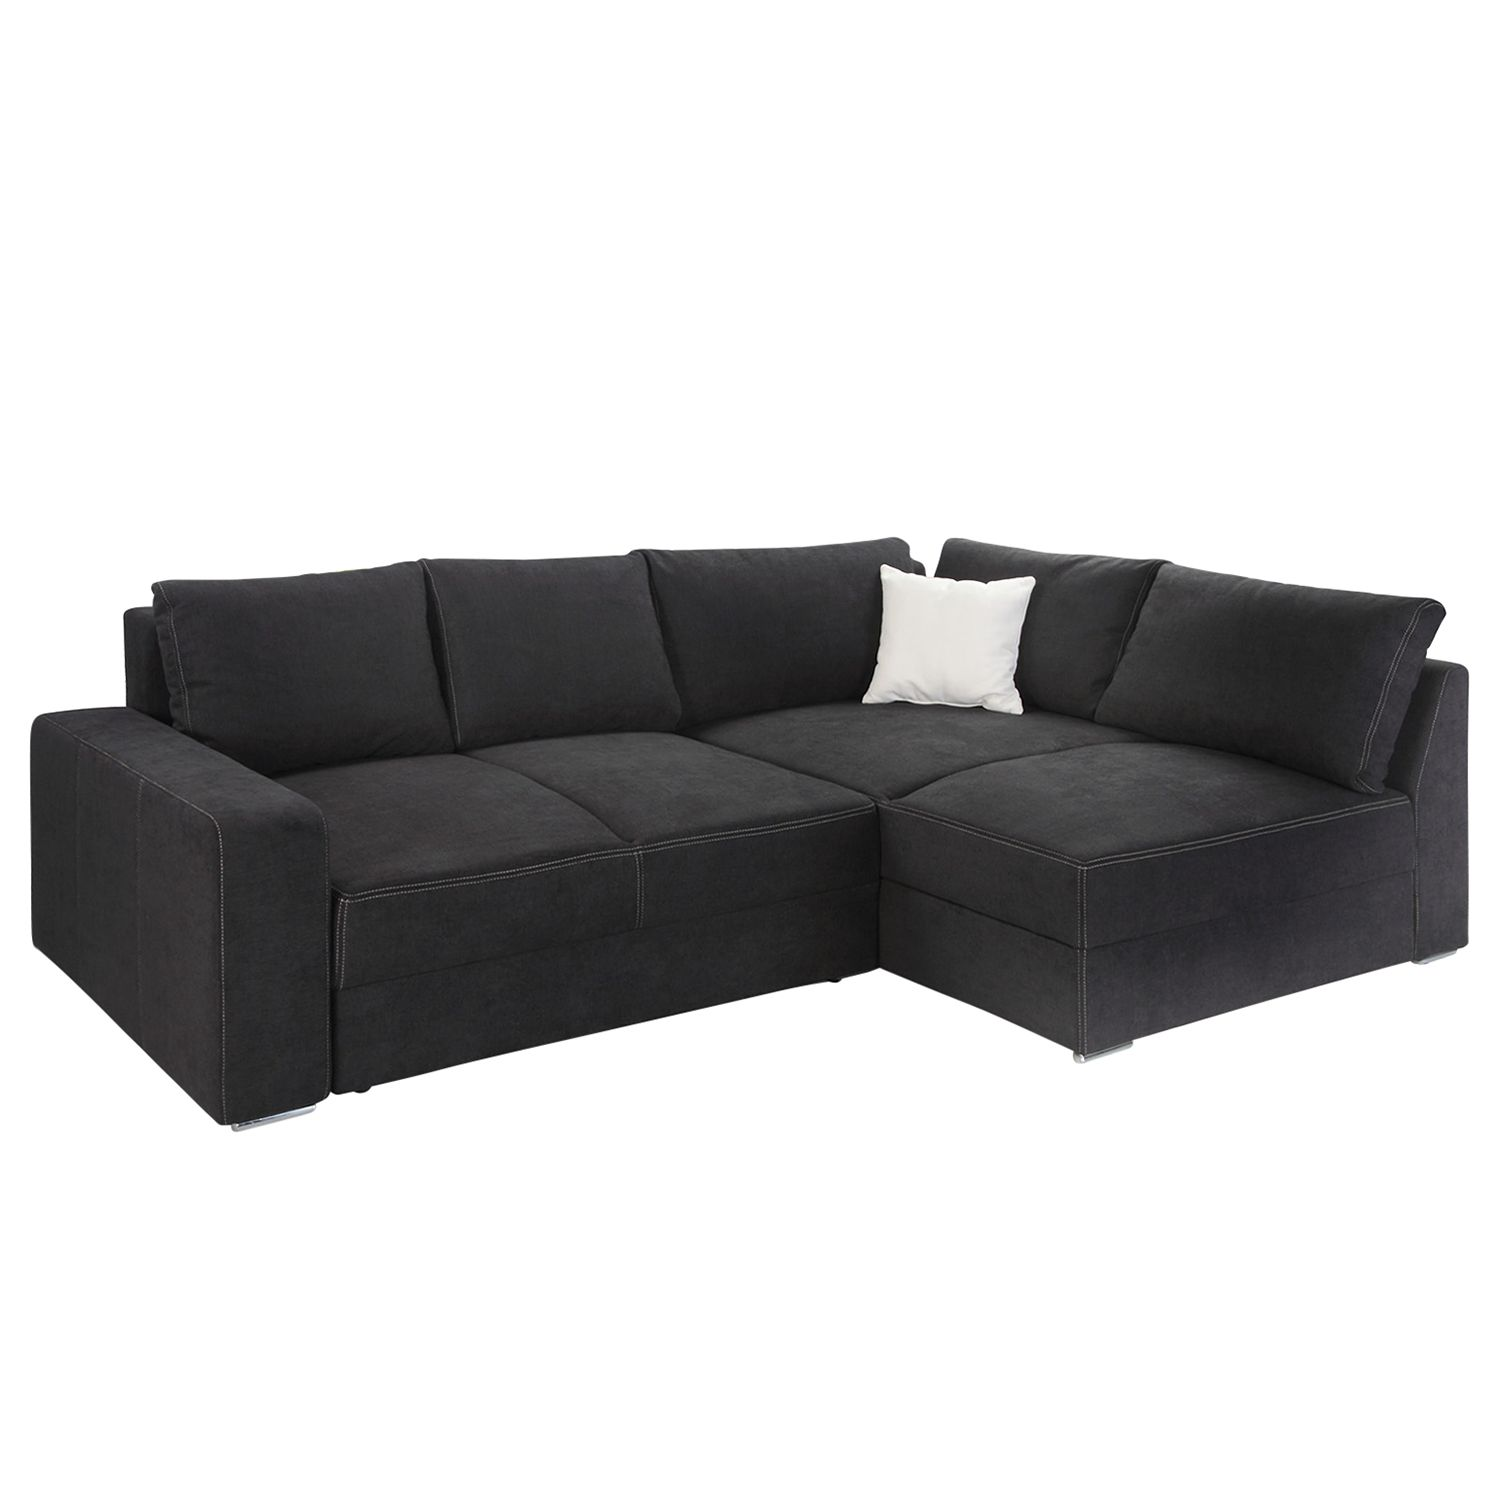 ecksofa mit schlaffunktion f r kleine r ume die neuesten innenarchitekturideen. Black Bedroom Furniture Sets. Home Design Ideas